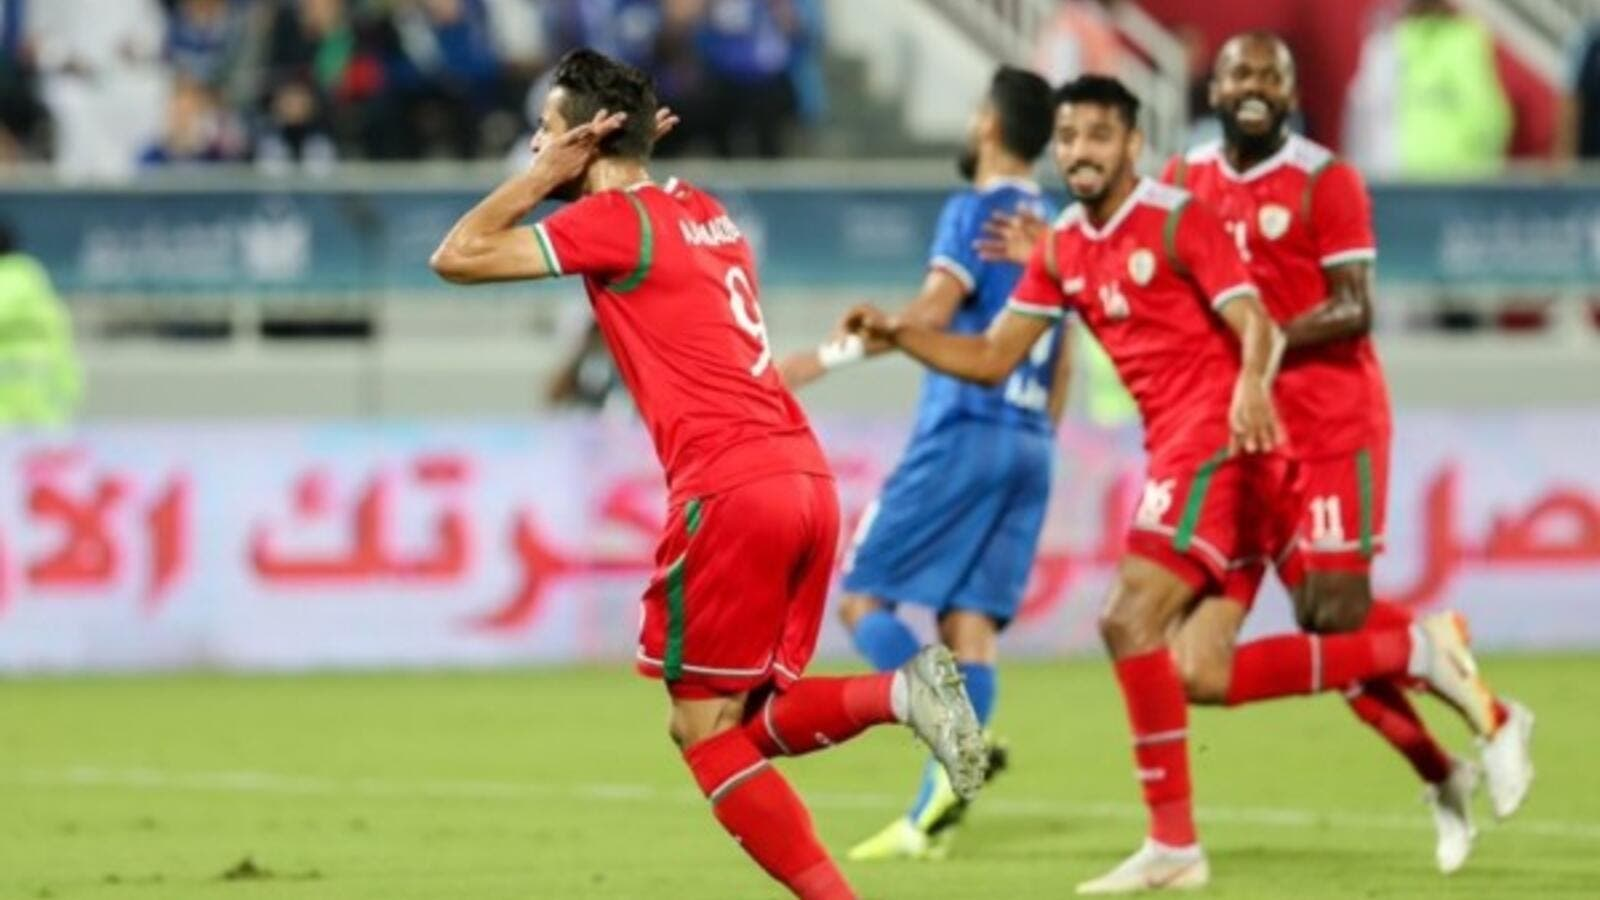 Photo: Oman Football Association